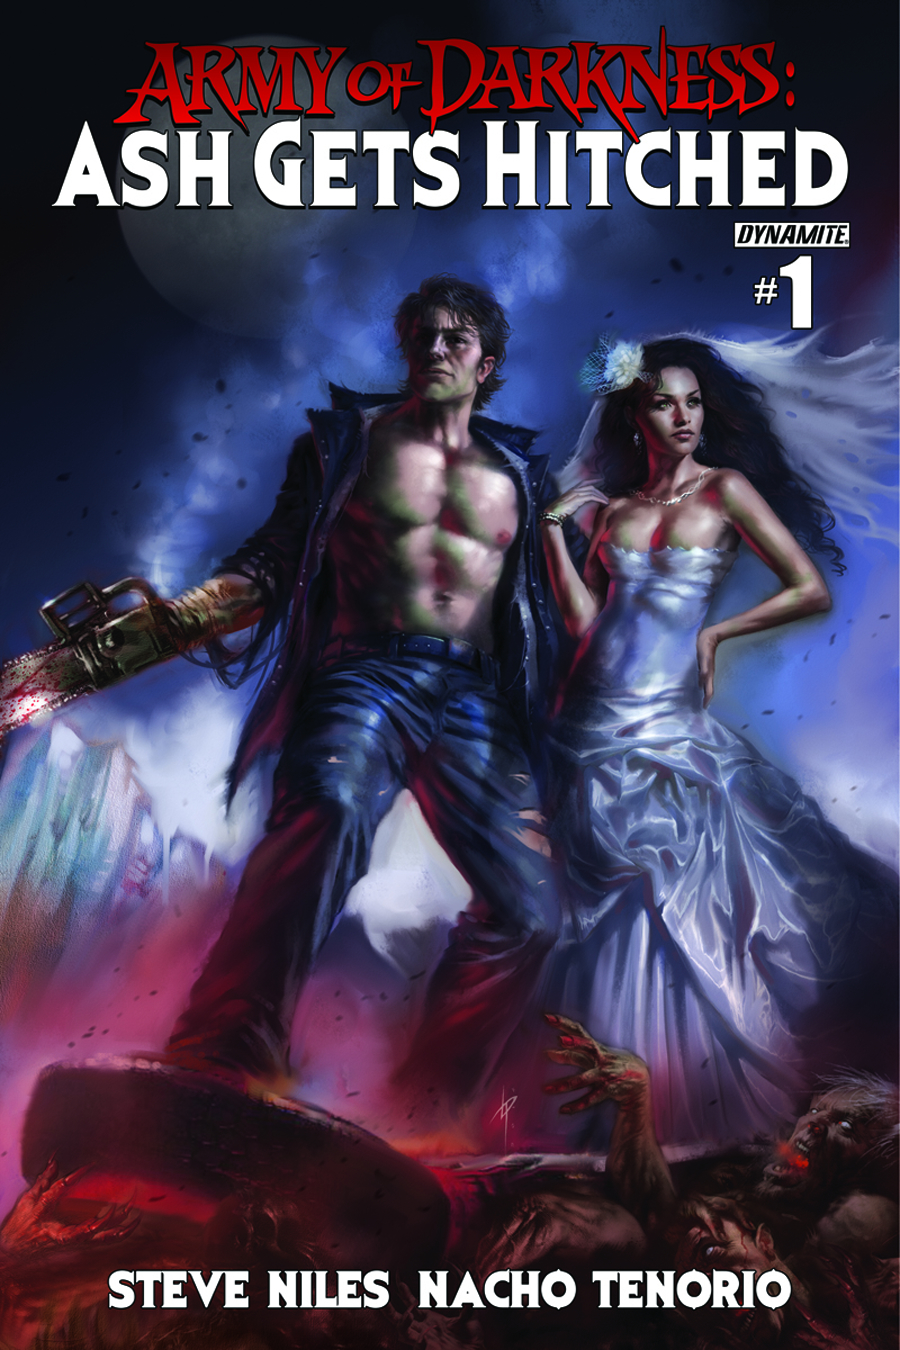 ARMY OF DARKNESS HITCHED #1